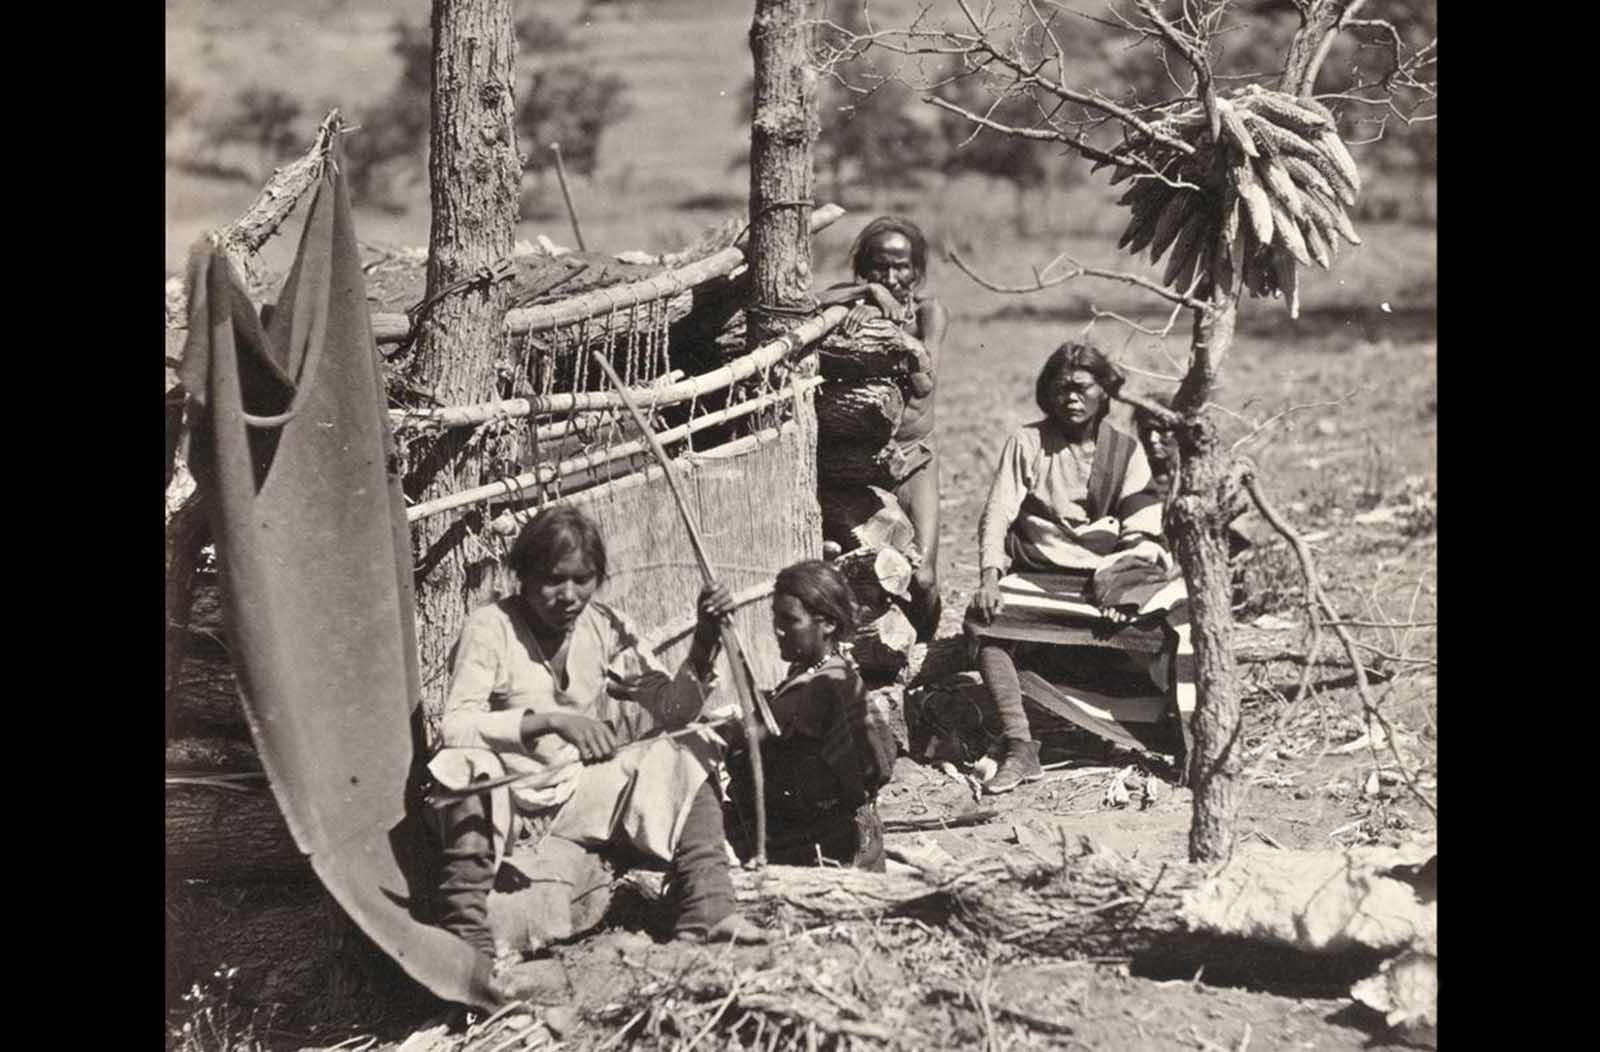 Aboriginal life among the Navajo Indians. Near old Fort Defiance, New Mexico, in 1873.